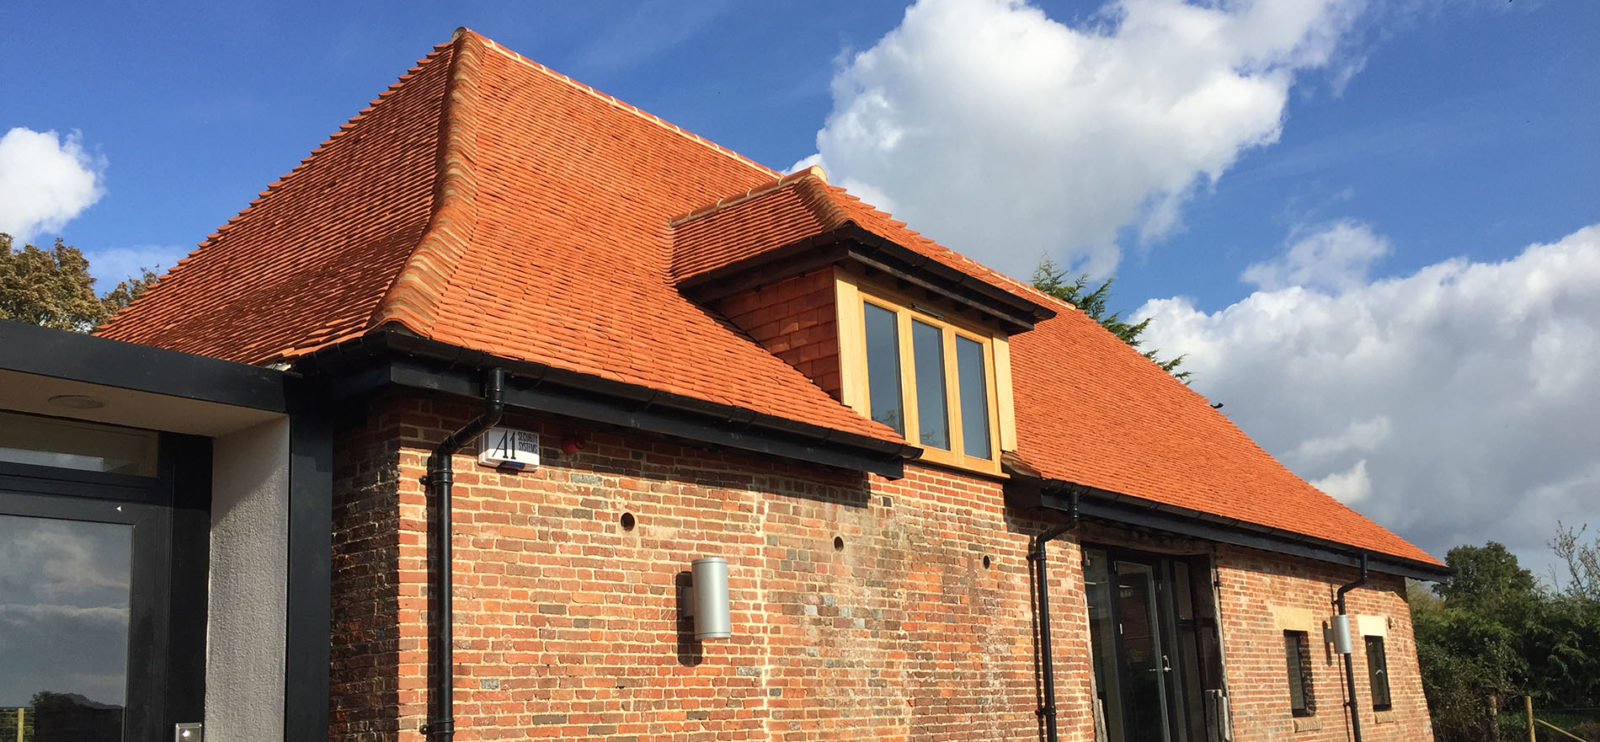 Lifestiles - Handcrafted Pentlow Clay Roof Tiles - Petersfield, England 5